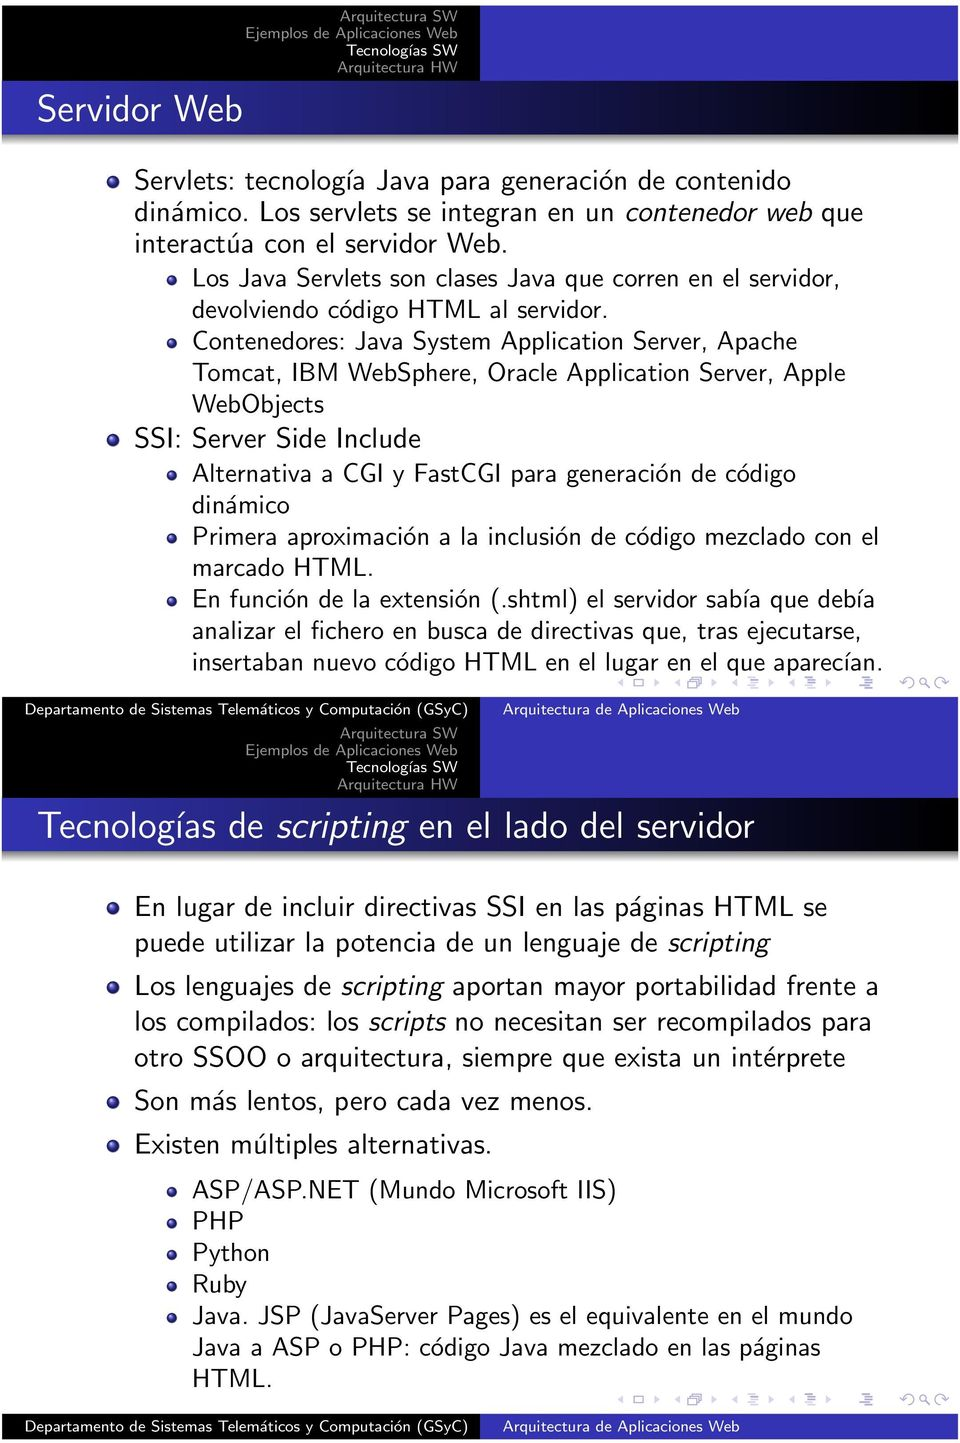 Contenedores: Java System Application Server, Apache Tomcat, IBM WebSphere, Oracle Application Server, Apple WebObjects SSI: Server Side Include Alternativa a CGI y FastCGI para generación de código